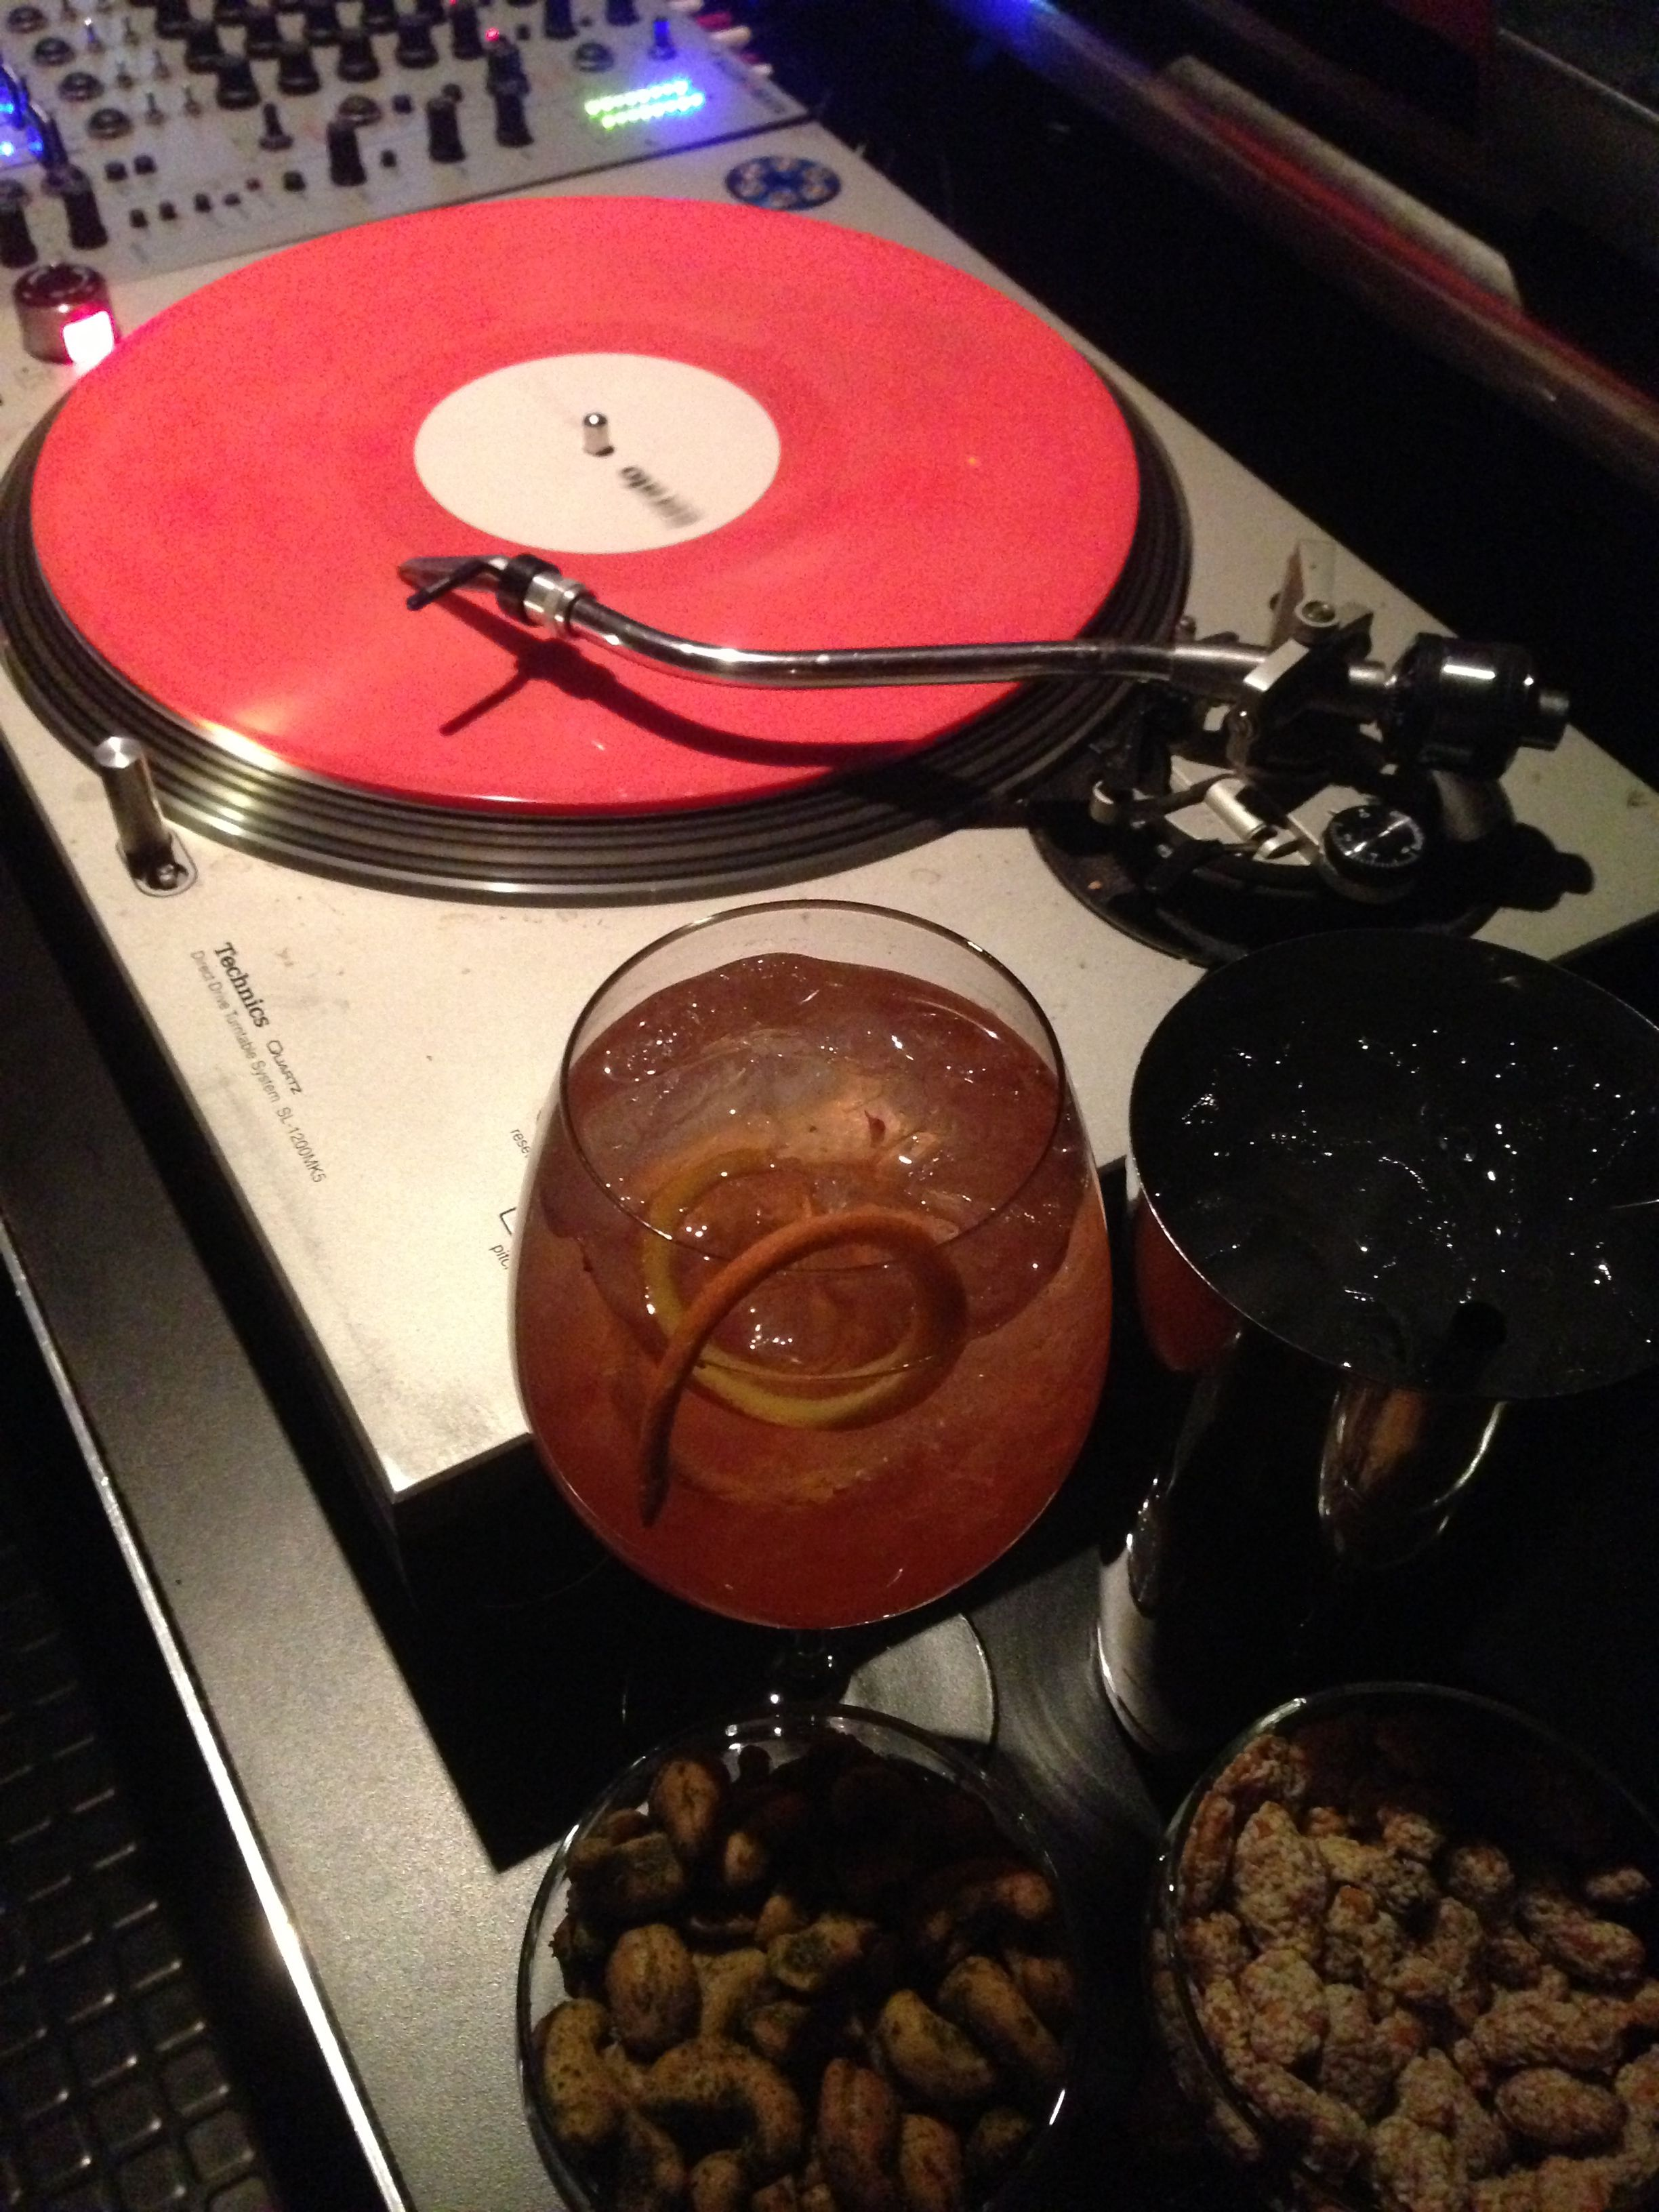 Orange Losing Your Marbles Limited Edition Serato Control Vinyl Dj Booth Vinyl The Twenties